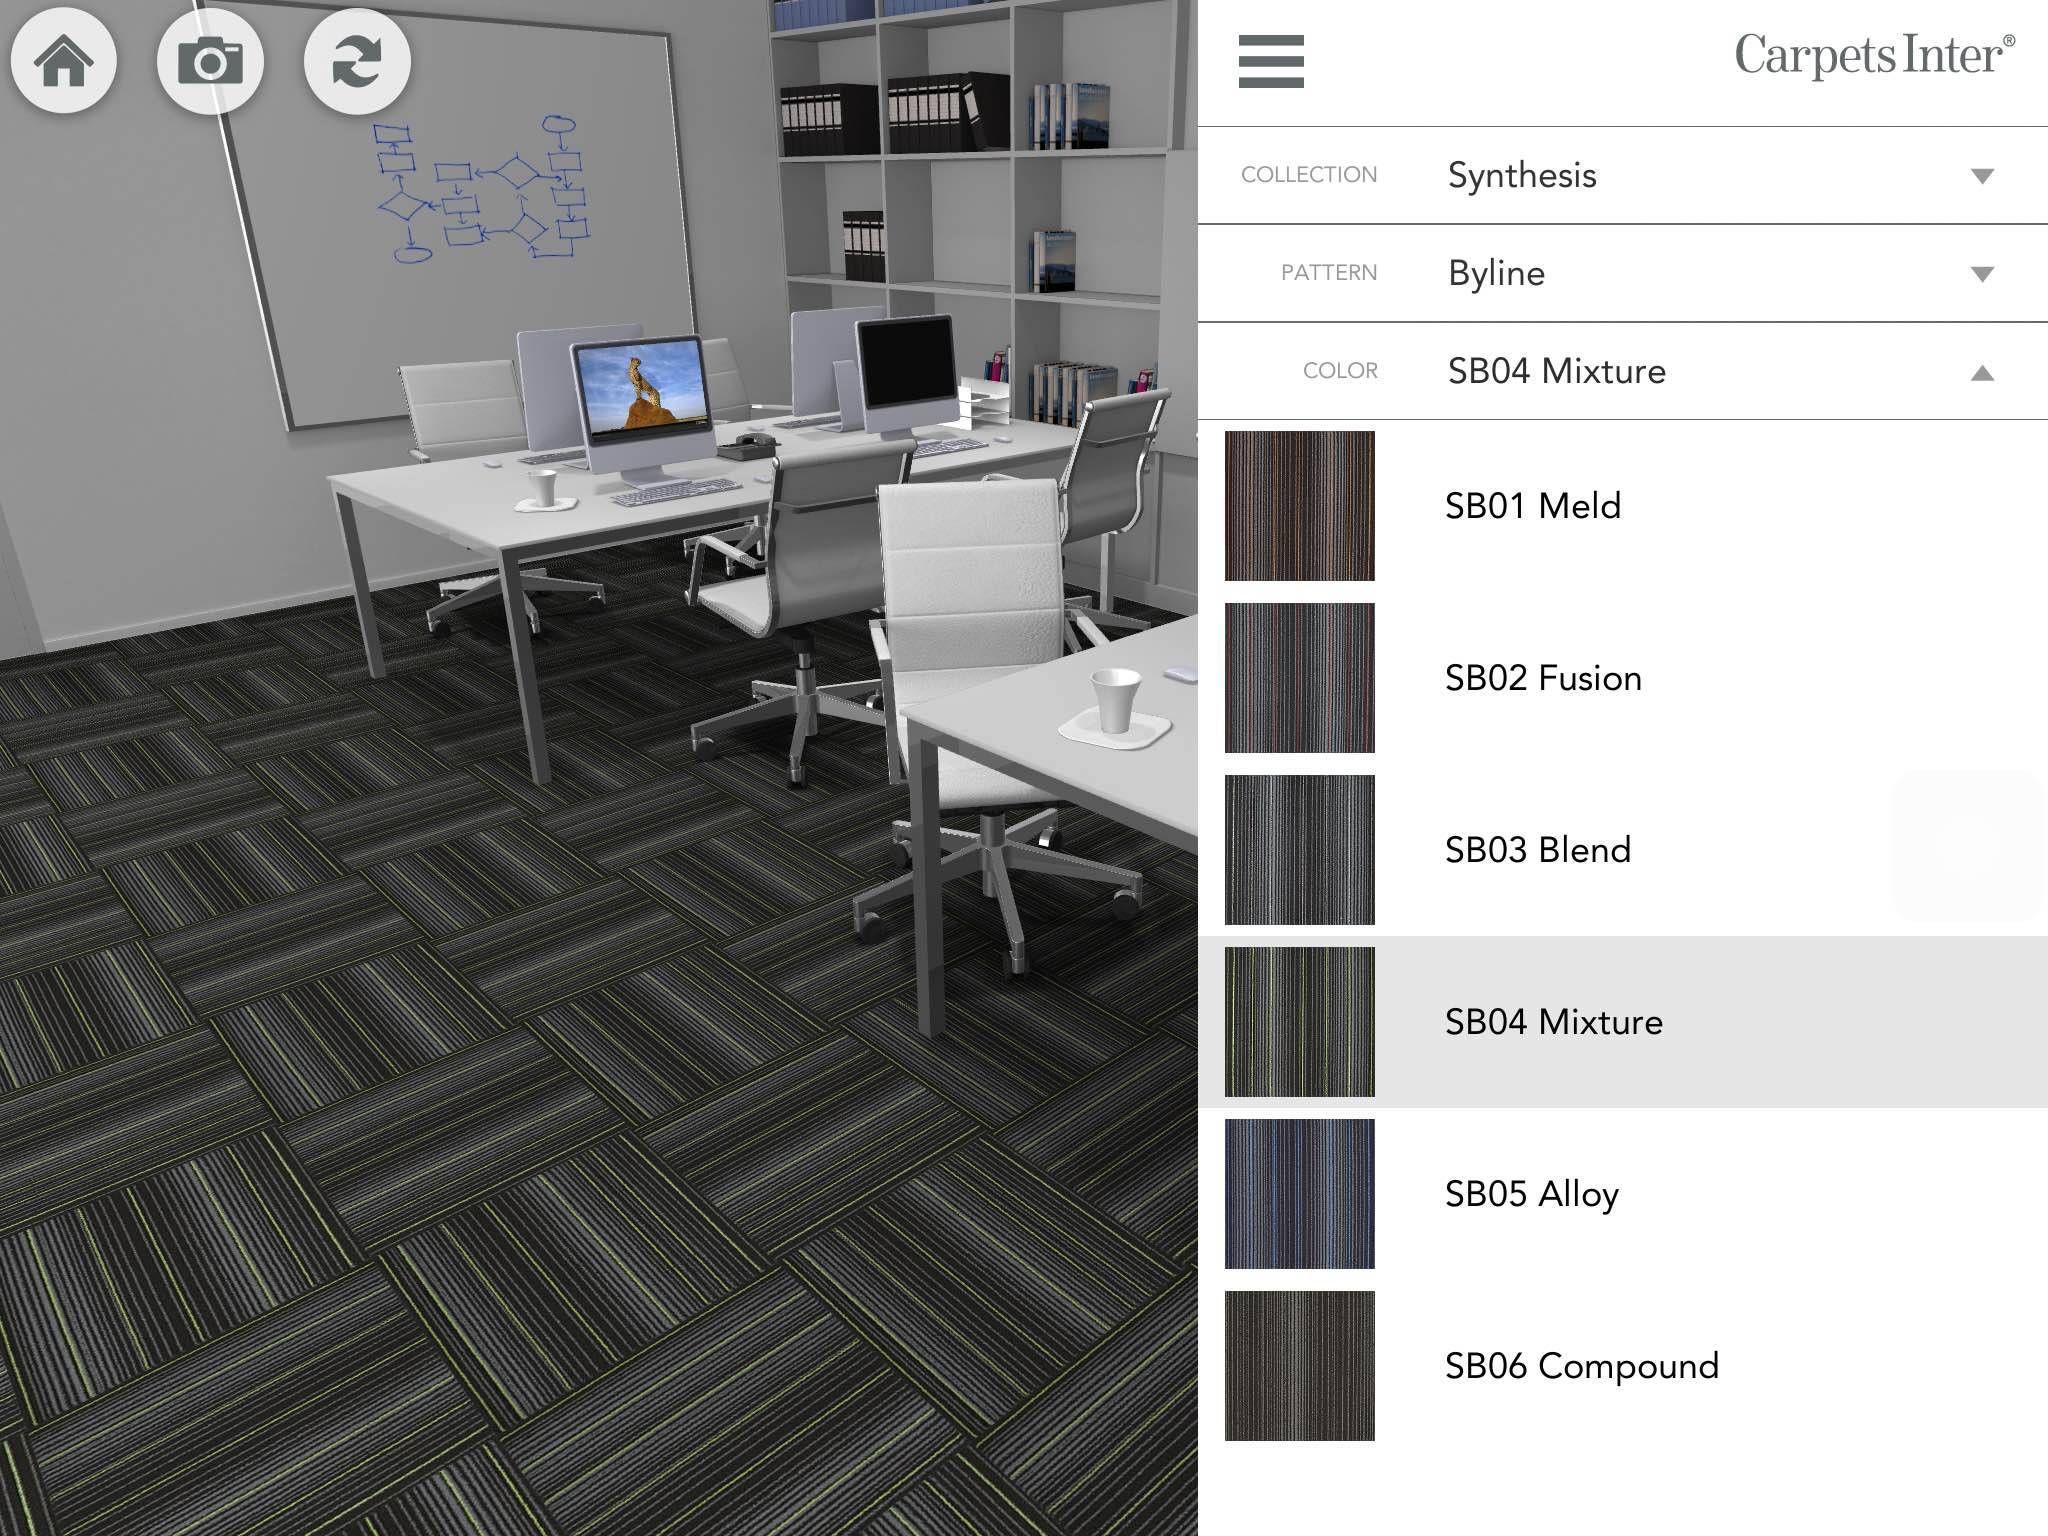 New carpets inter 3d virtual simulator app selector Virtual flooring